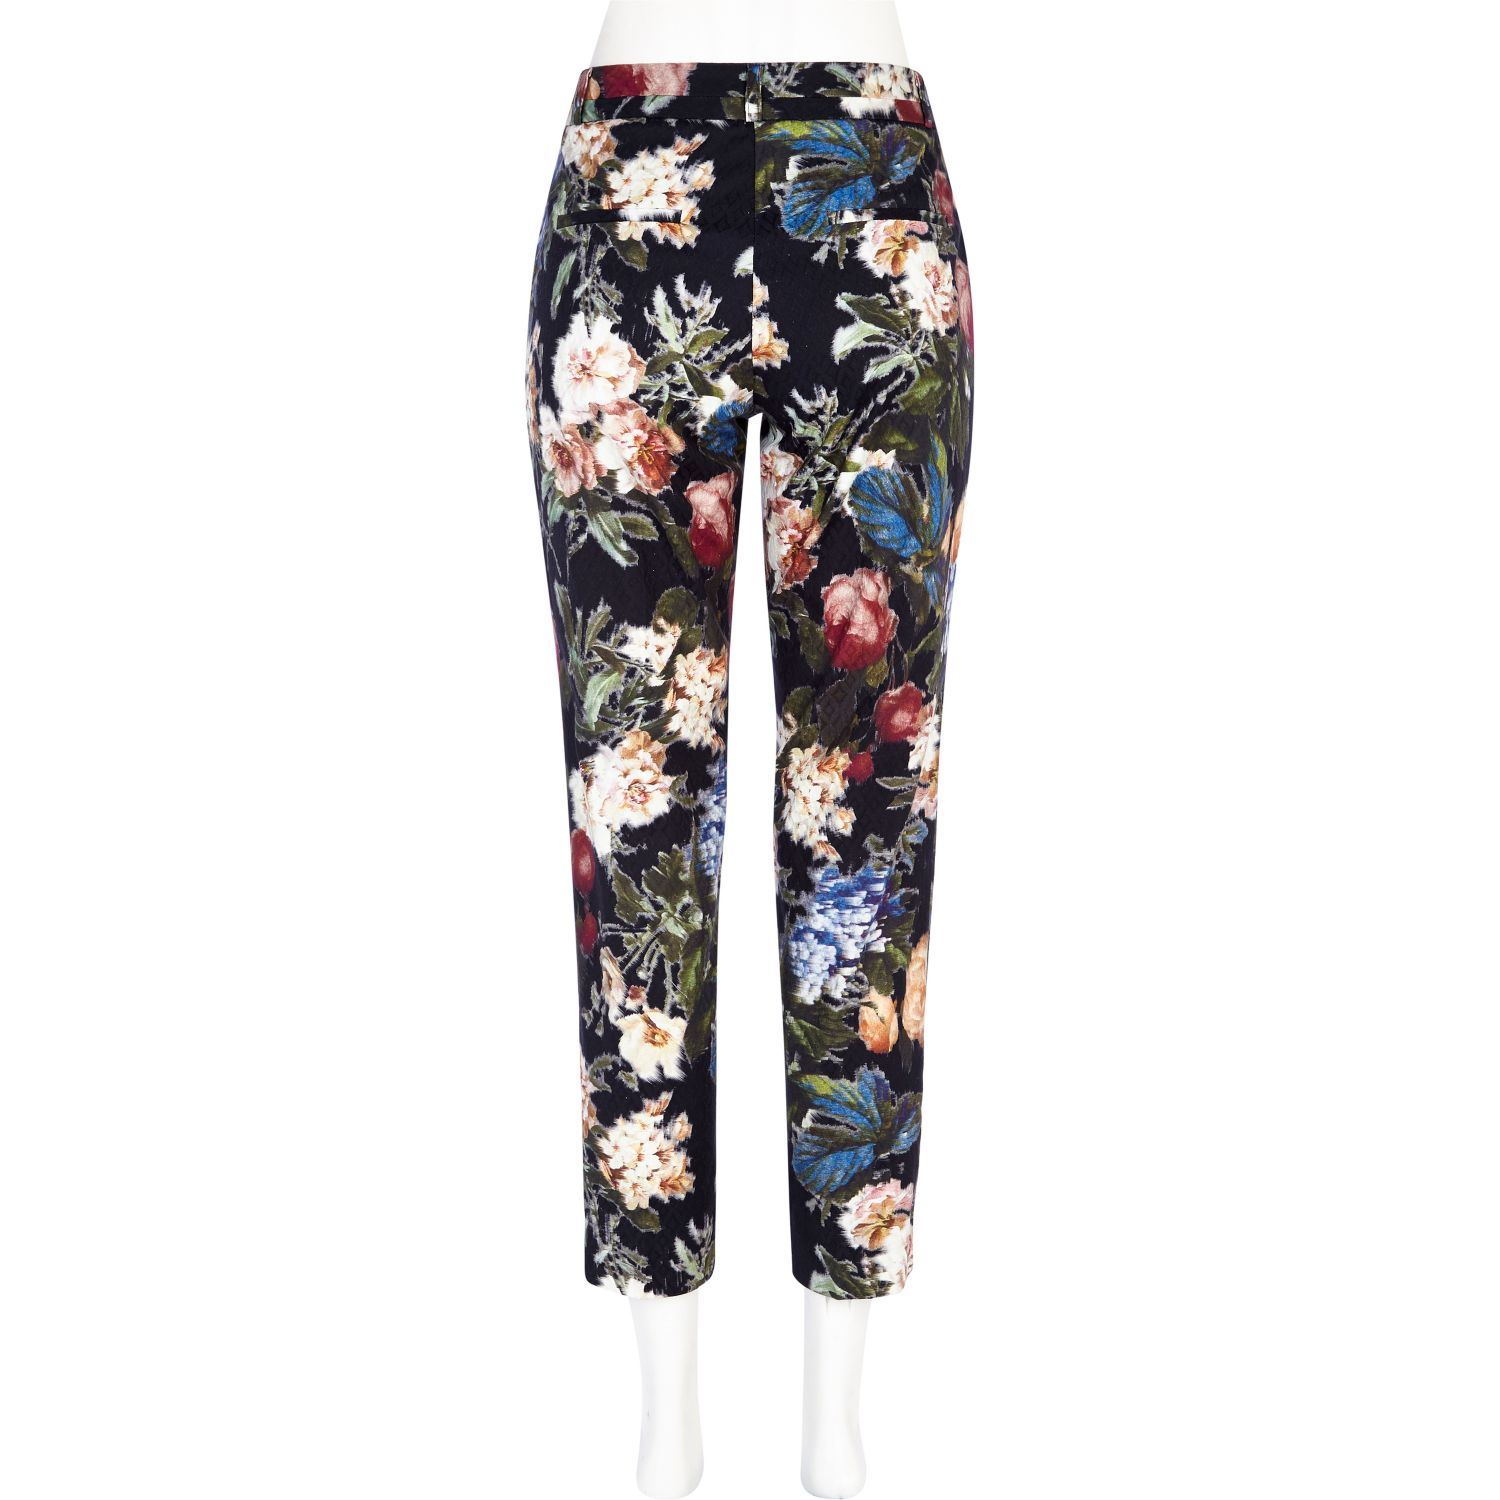 Available In Black Floral High-Rise Woven Fabric Waistband Waist Tie Detail Floral Print Fabric Straight Leg 2 Pockets 26